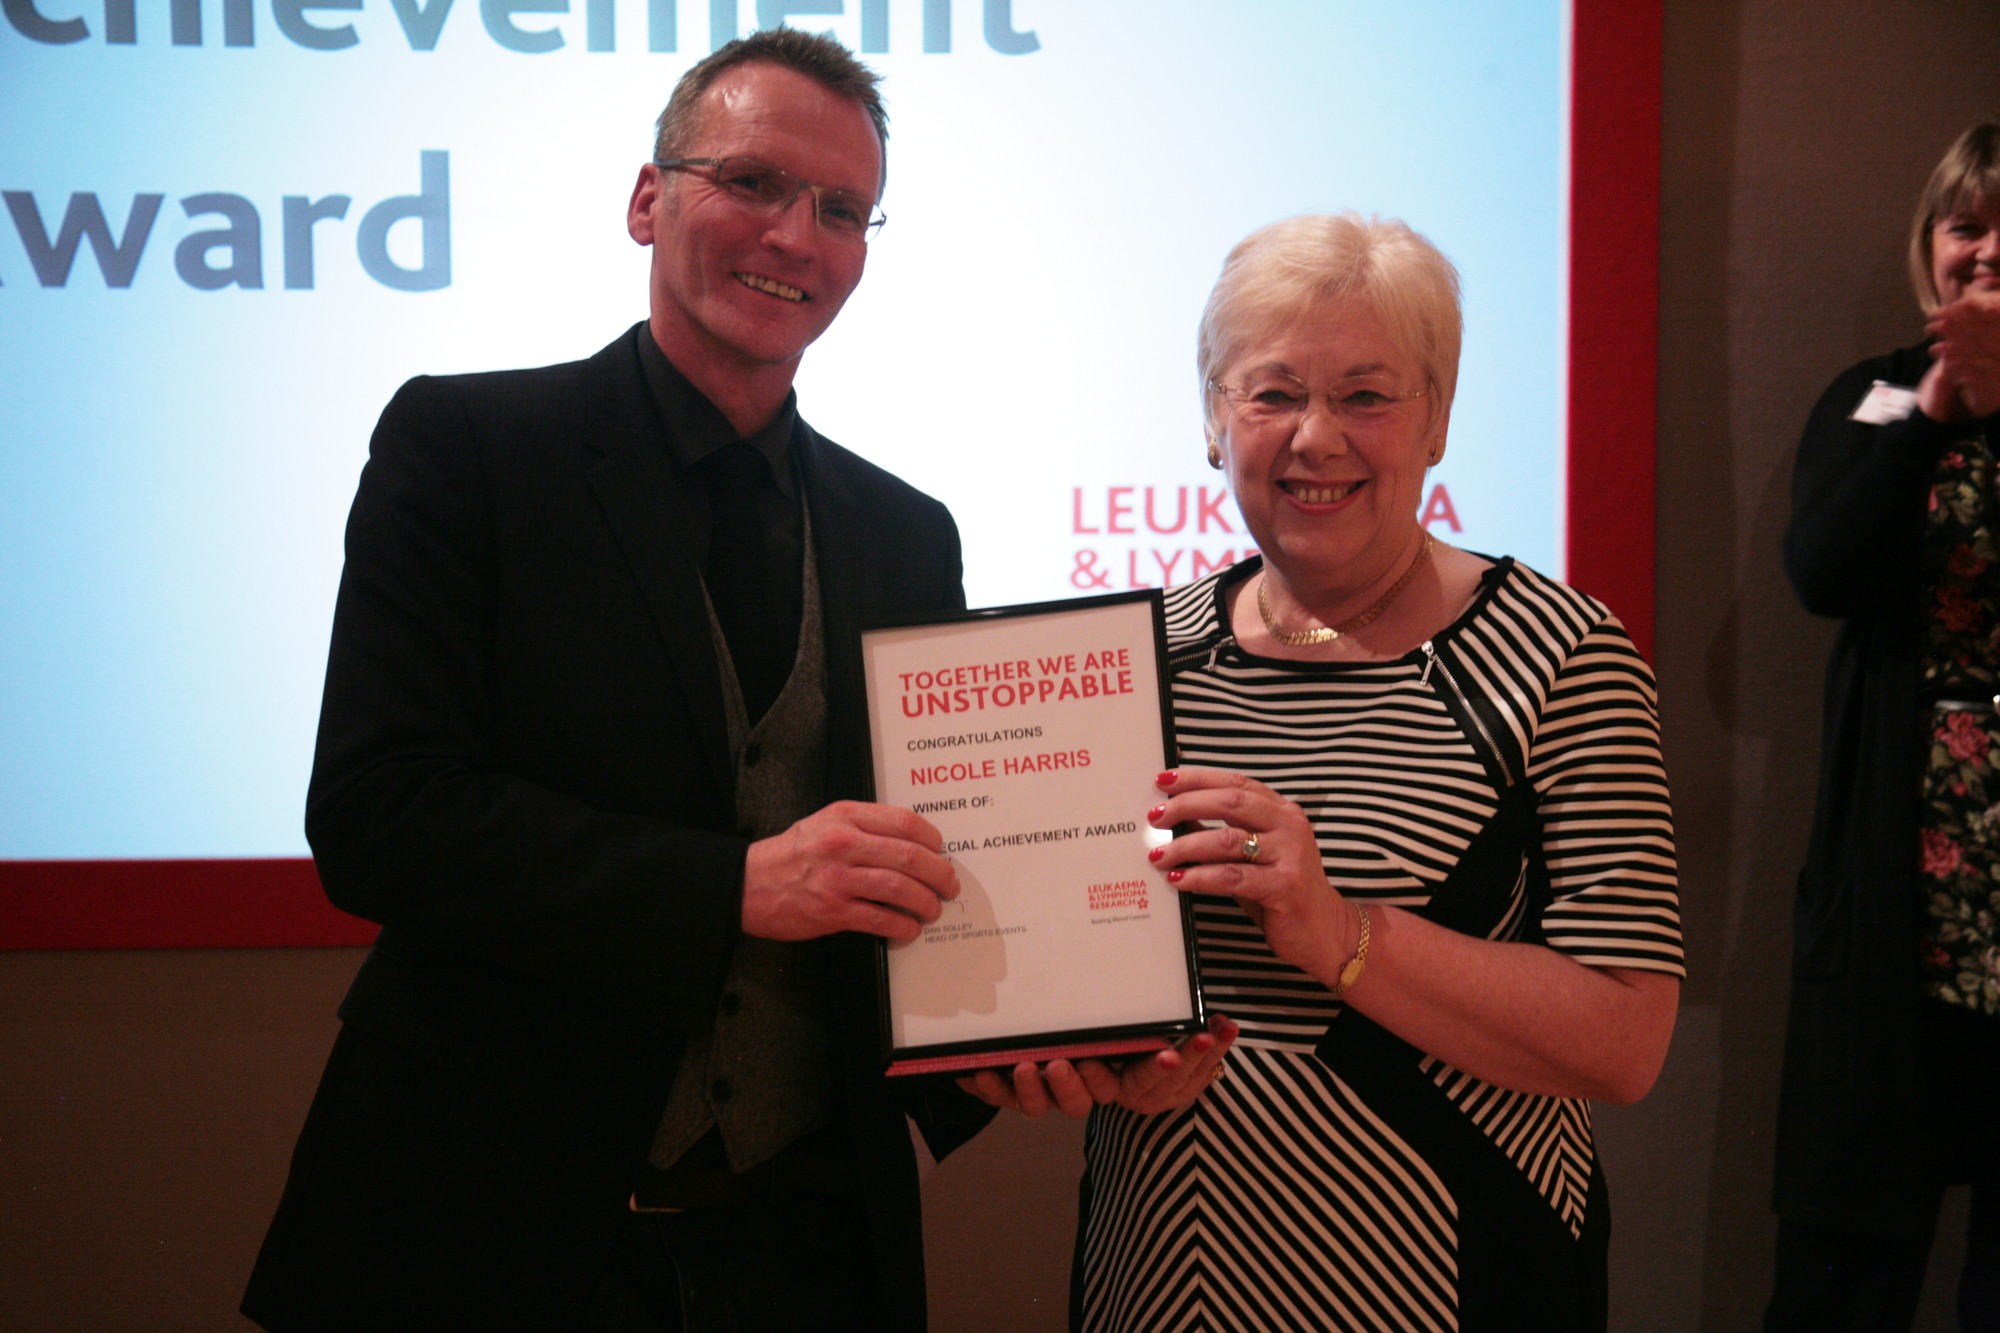 SPECIAL AWARD: Chaiman of the Bromsgrove branch of Leukaemia Research UK Nicole Harris receives a special achievement award from Barnt Green resident and former England footballer Geoff Thomas. SP